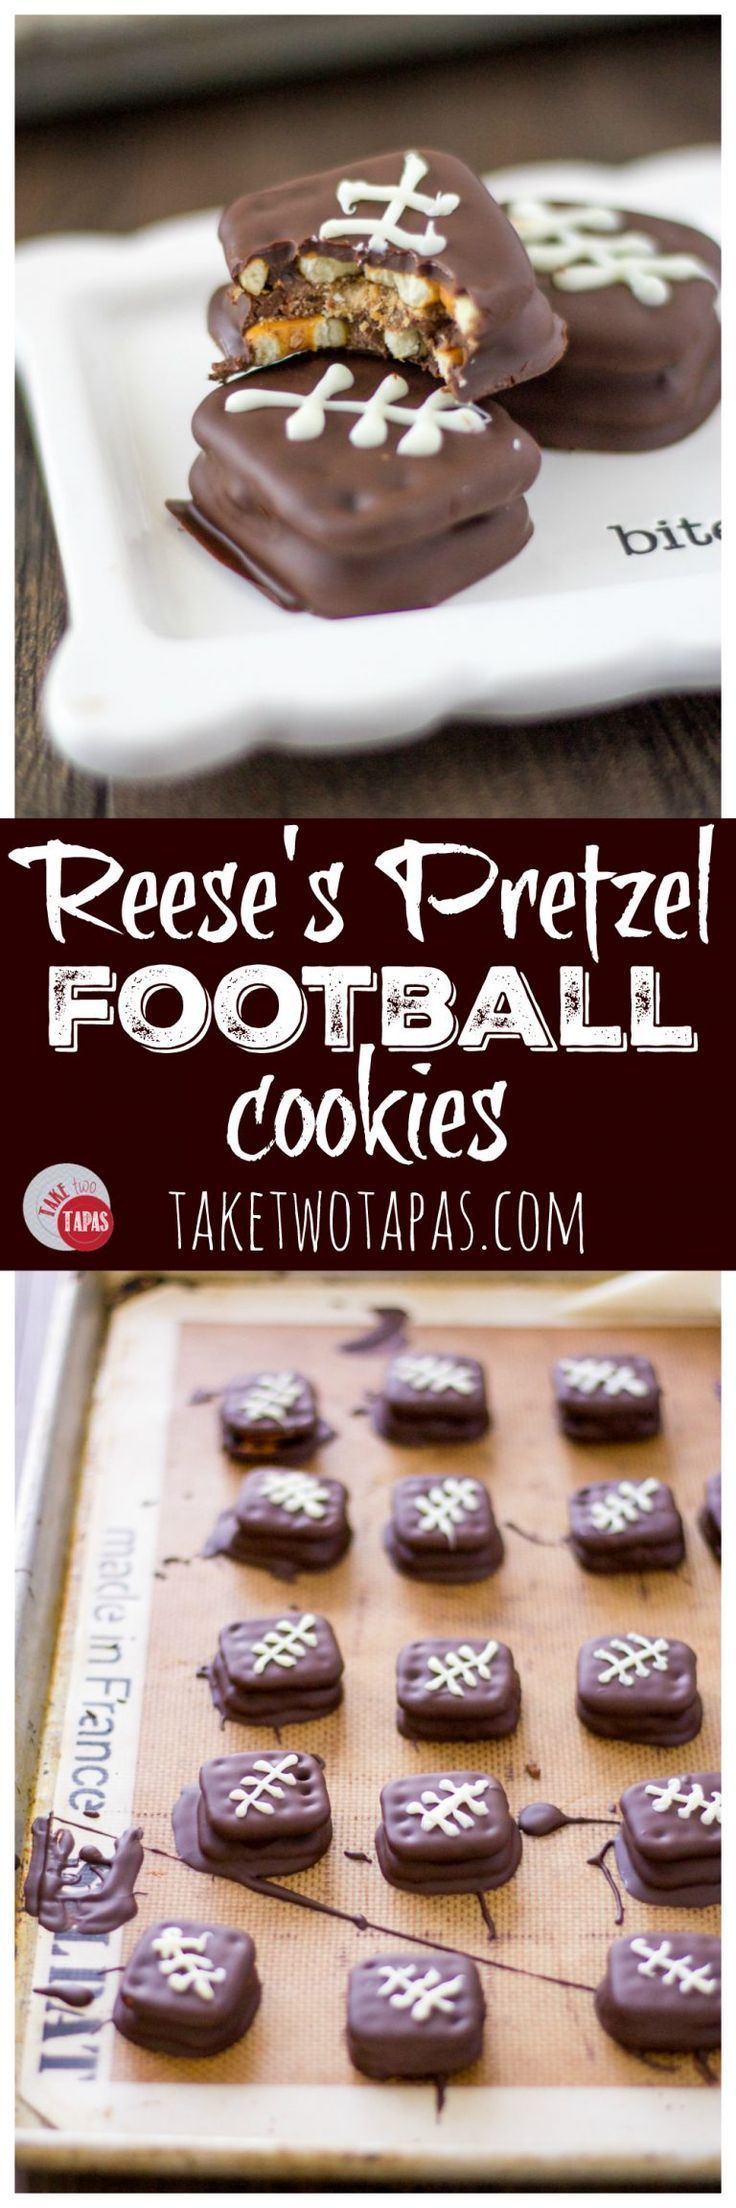 A salty, crispy pretzel sandwich stuffed with Reese's cups, dipped in chocolate and decorated with laces make the perfect Reese's Pretzel Football Cookies for your Game Day Celebration! Recipe | Take Two Tapas